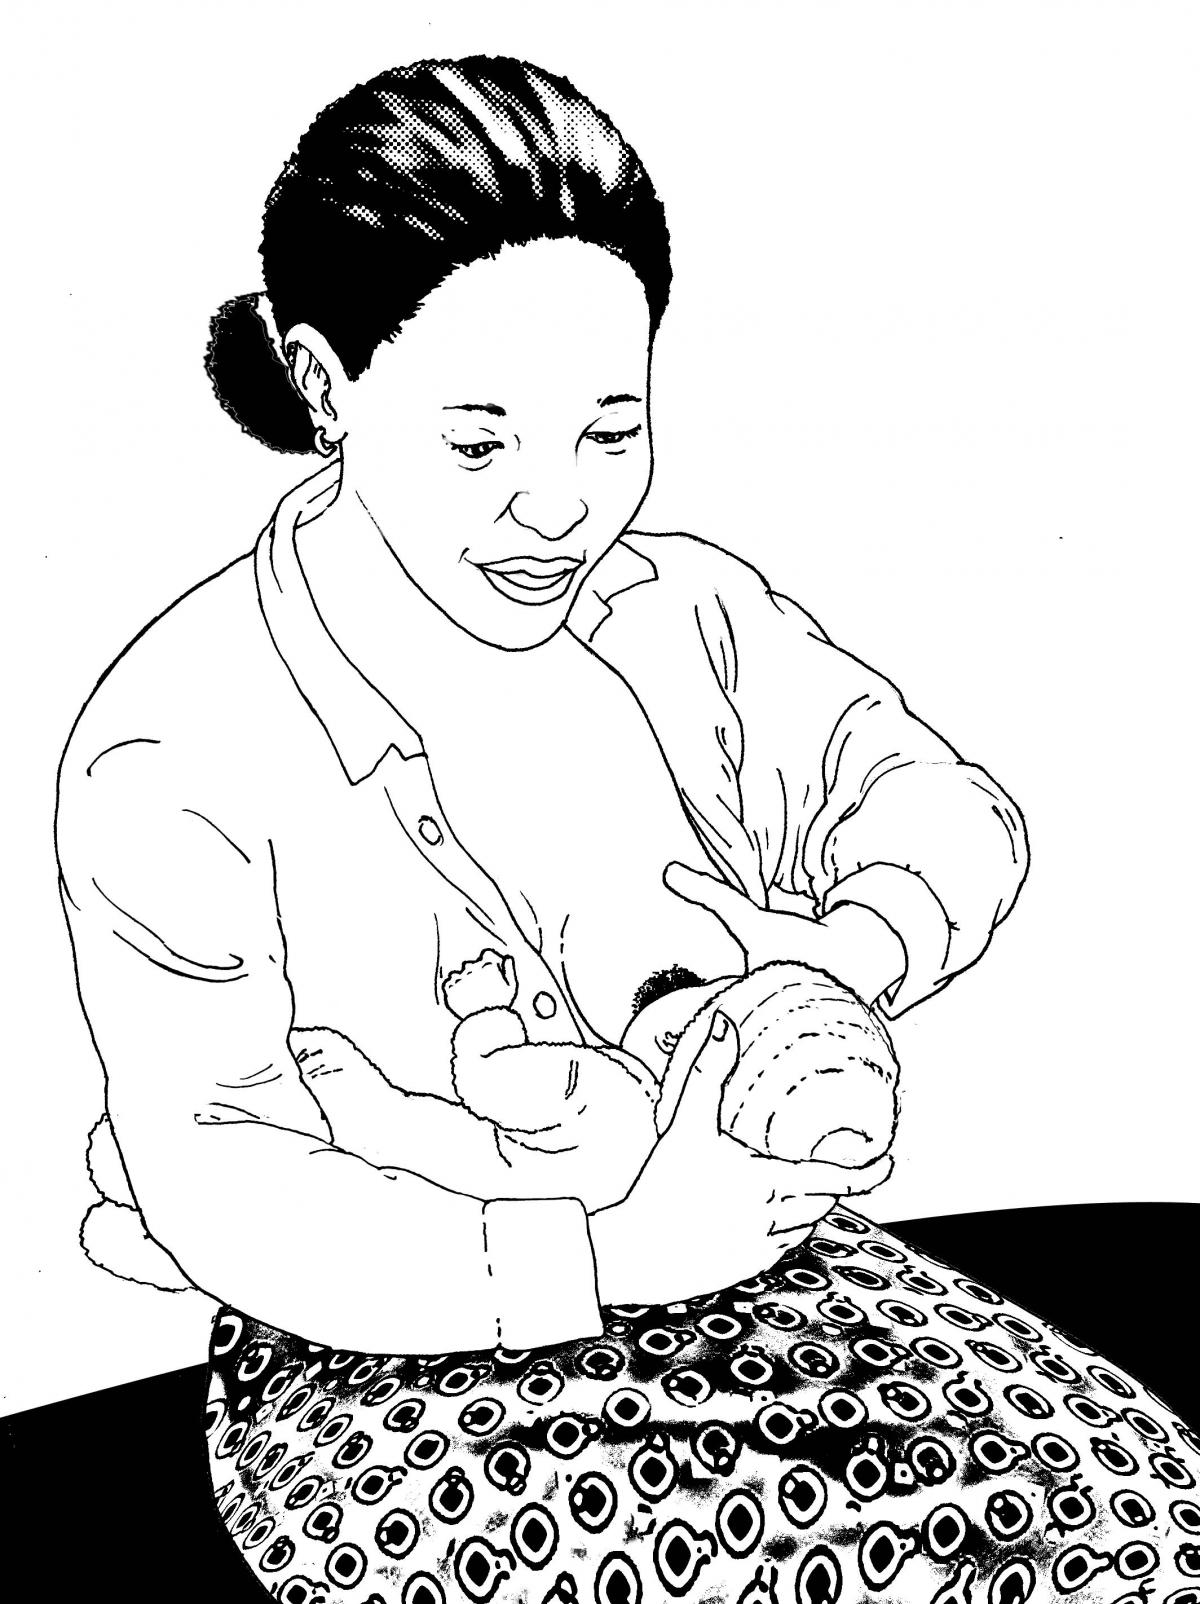 Breastfeeding - Breastfeeding positions 0-6 mo - 01A - Non-country specific